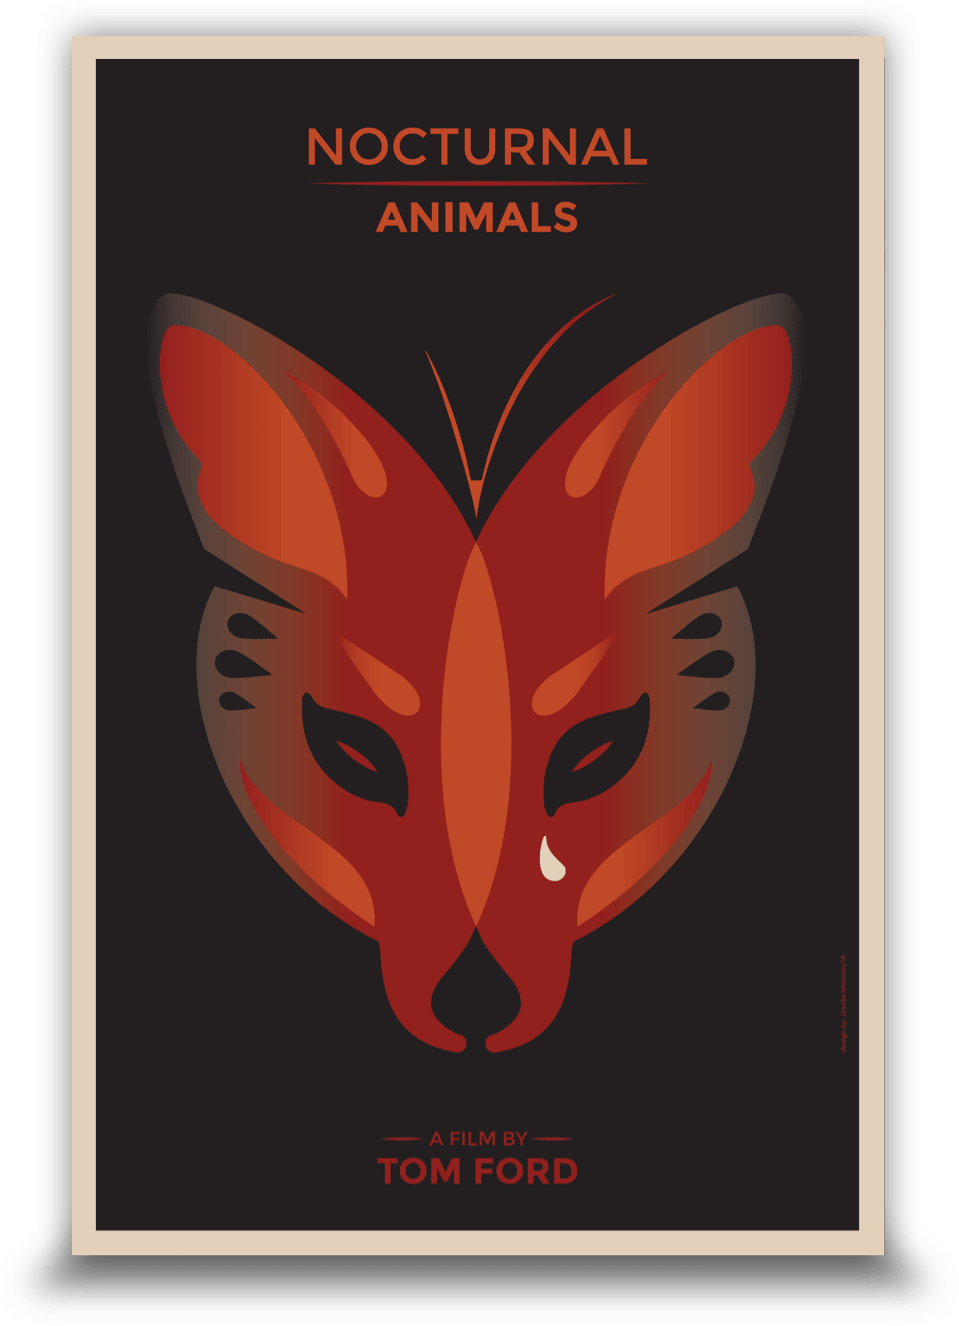 Drawing movie poster. To celebrate nocturnal animals